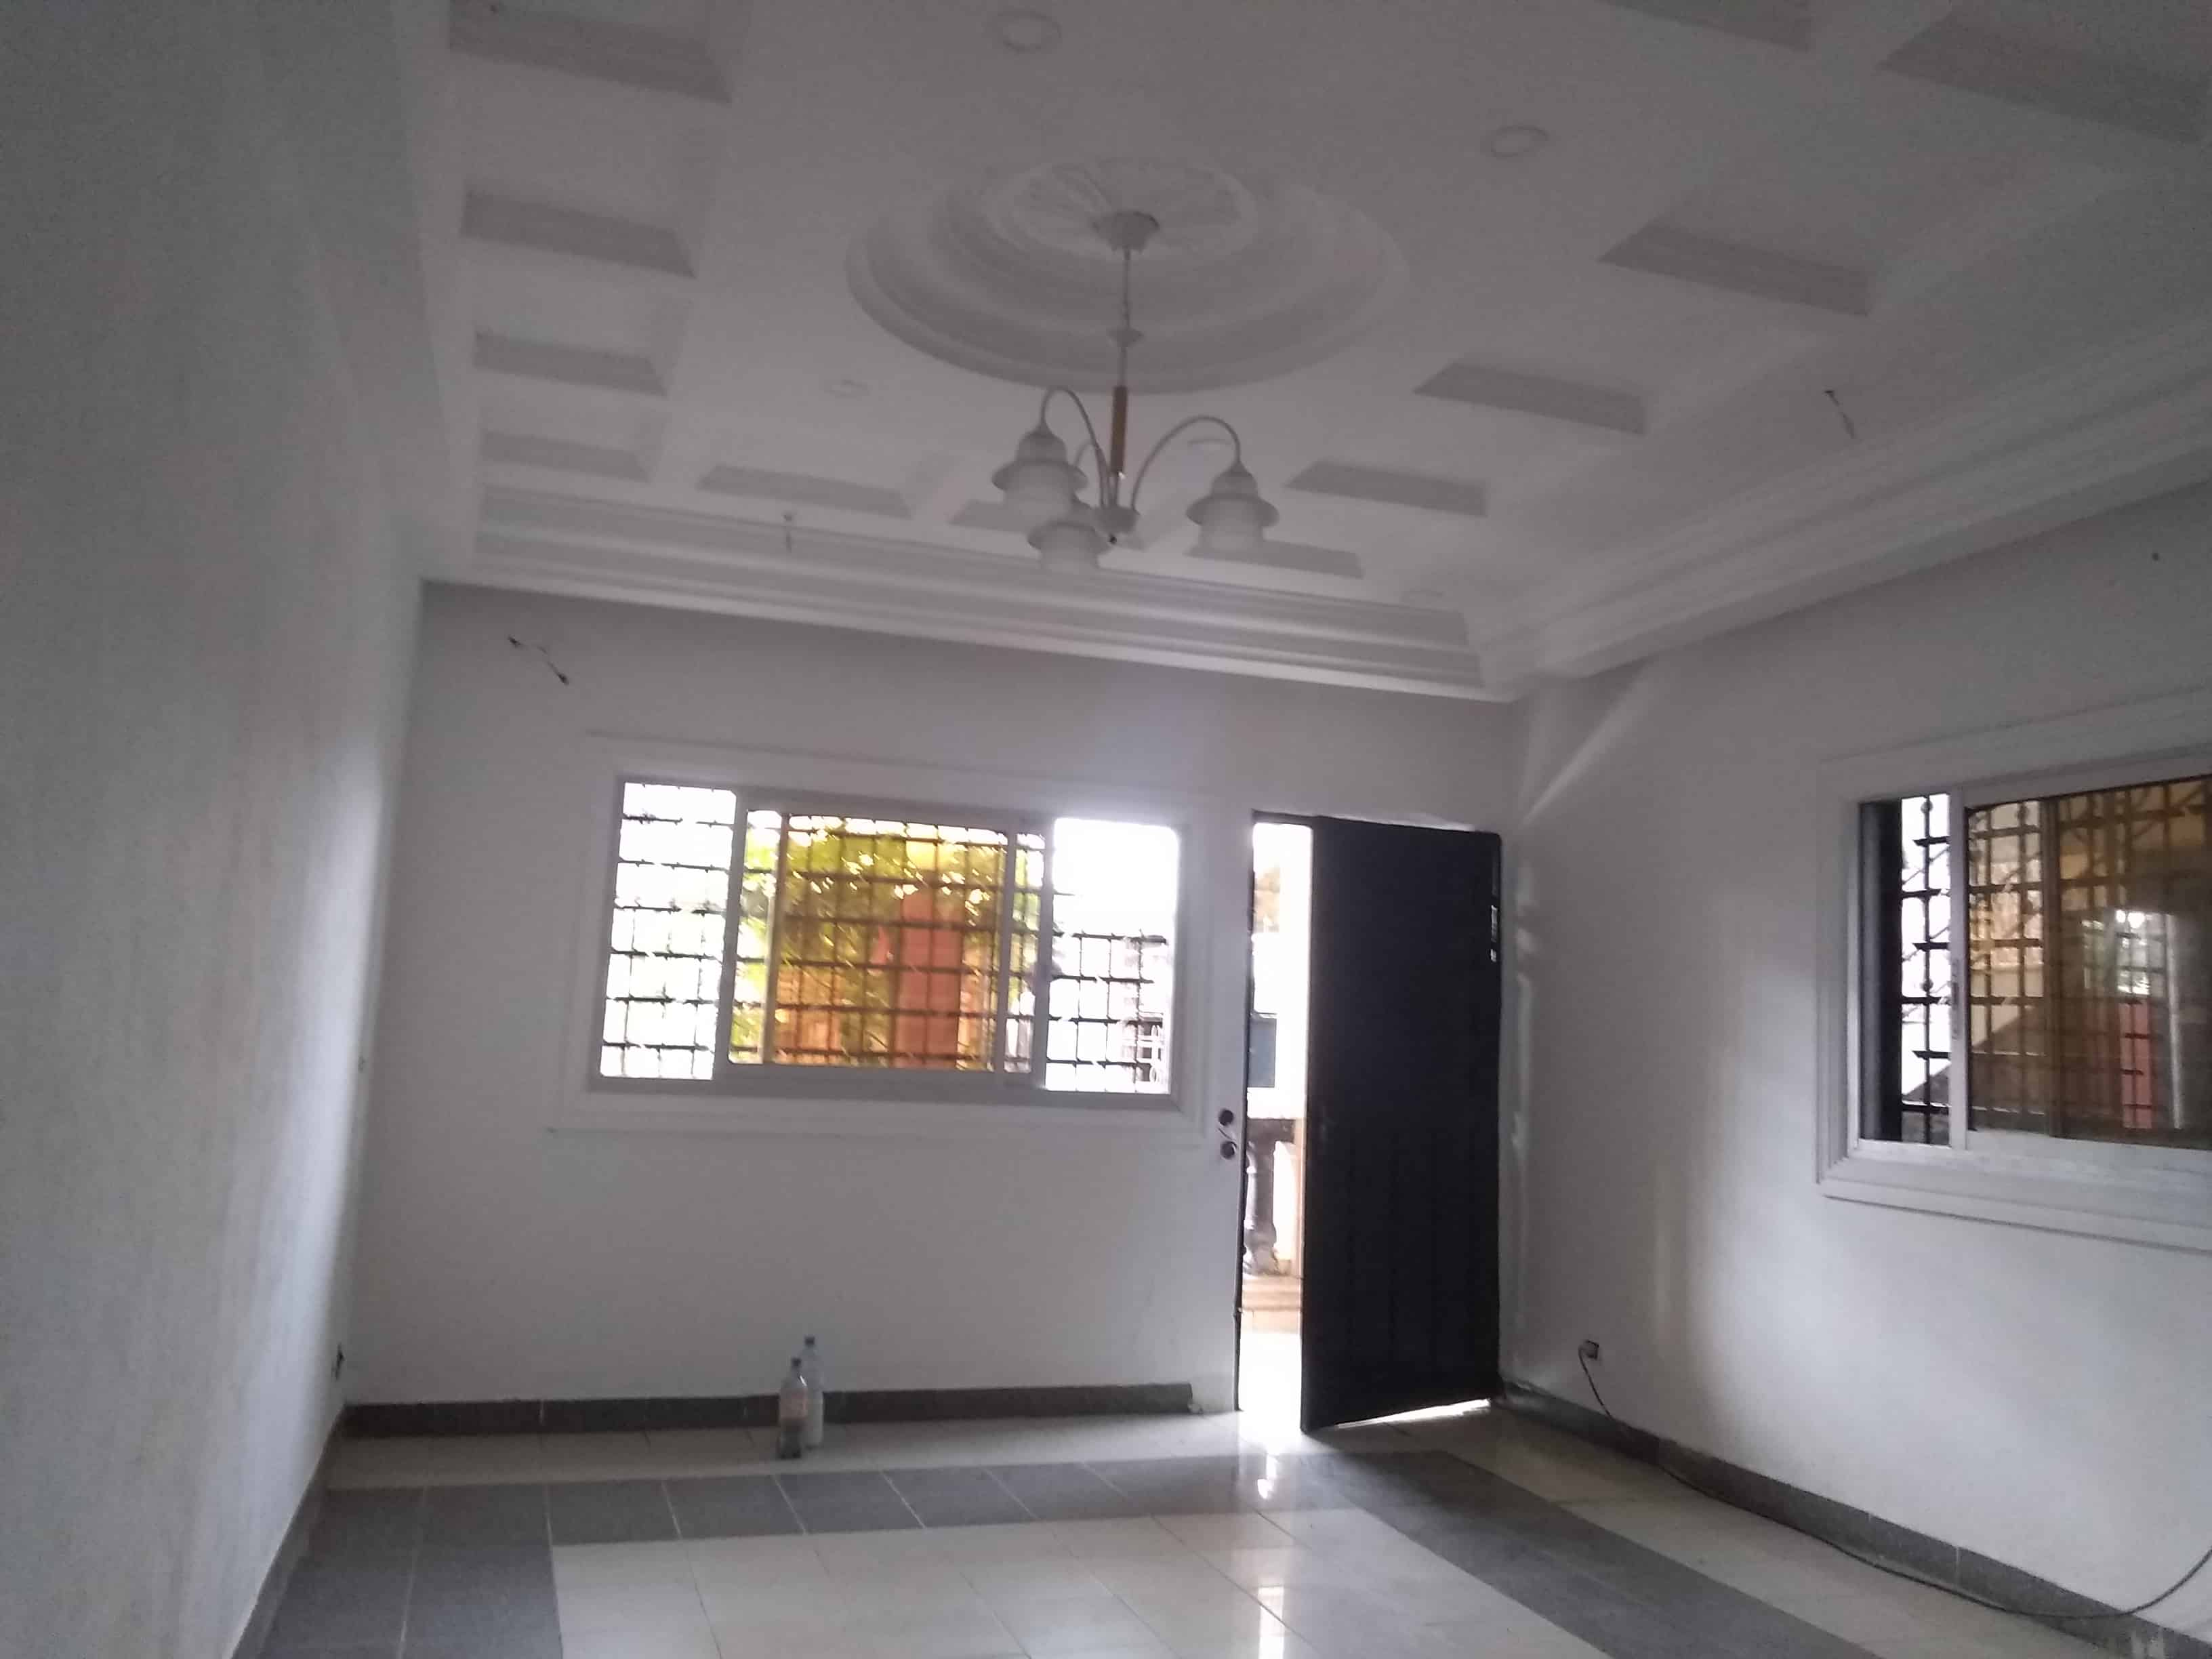 "Apartment to rent - Douala, Logpom, Carrefour"" Gabon bar"" - 1 living room(s), 1 bedroom(s), 1 bathroom(s) - 90 000 FCFA / month"